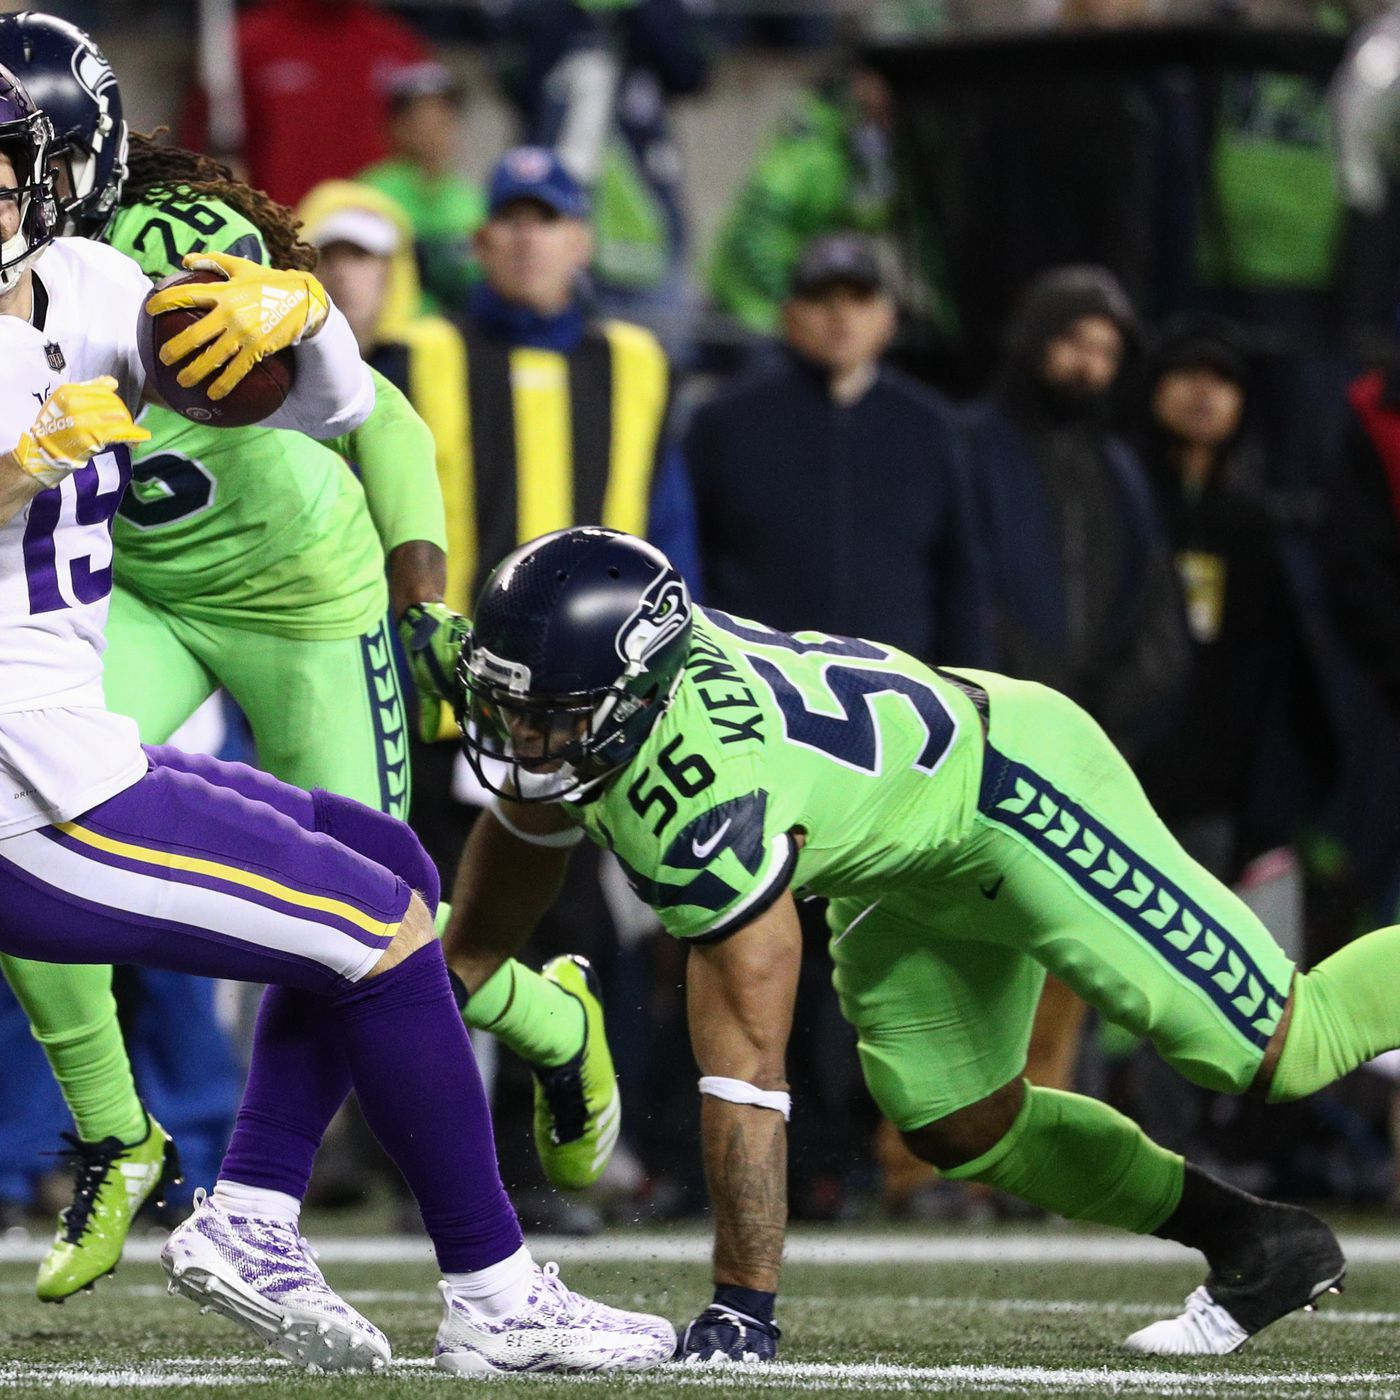 b9ca4d458 Report: Seahawks lose Mychal Kendricks for the season with broken tibia